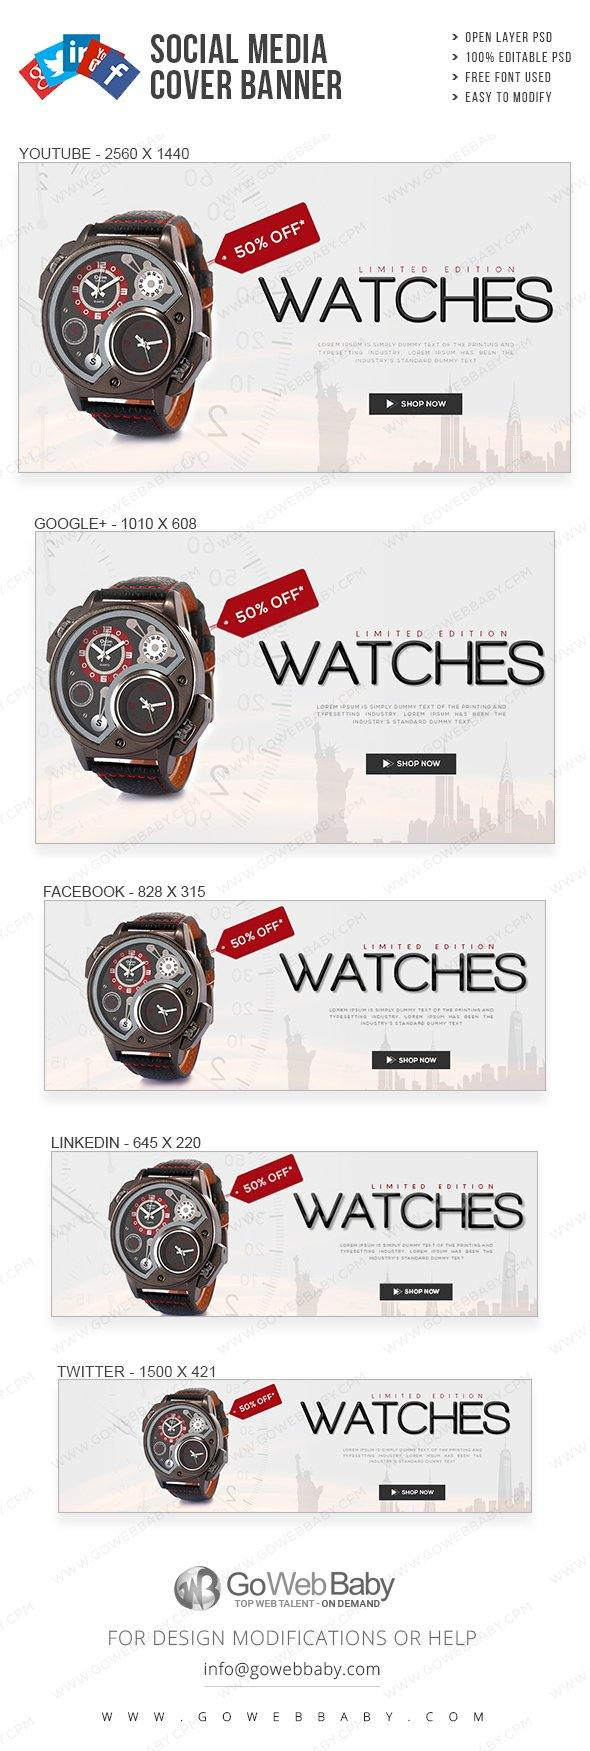 Social Media Cover Banner - Exclusive Watch Collection For Website Marketing